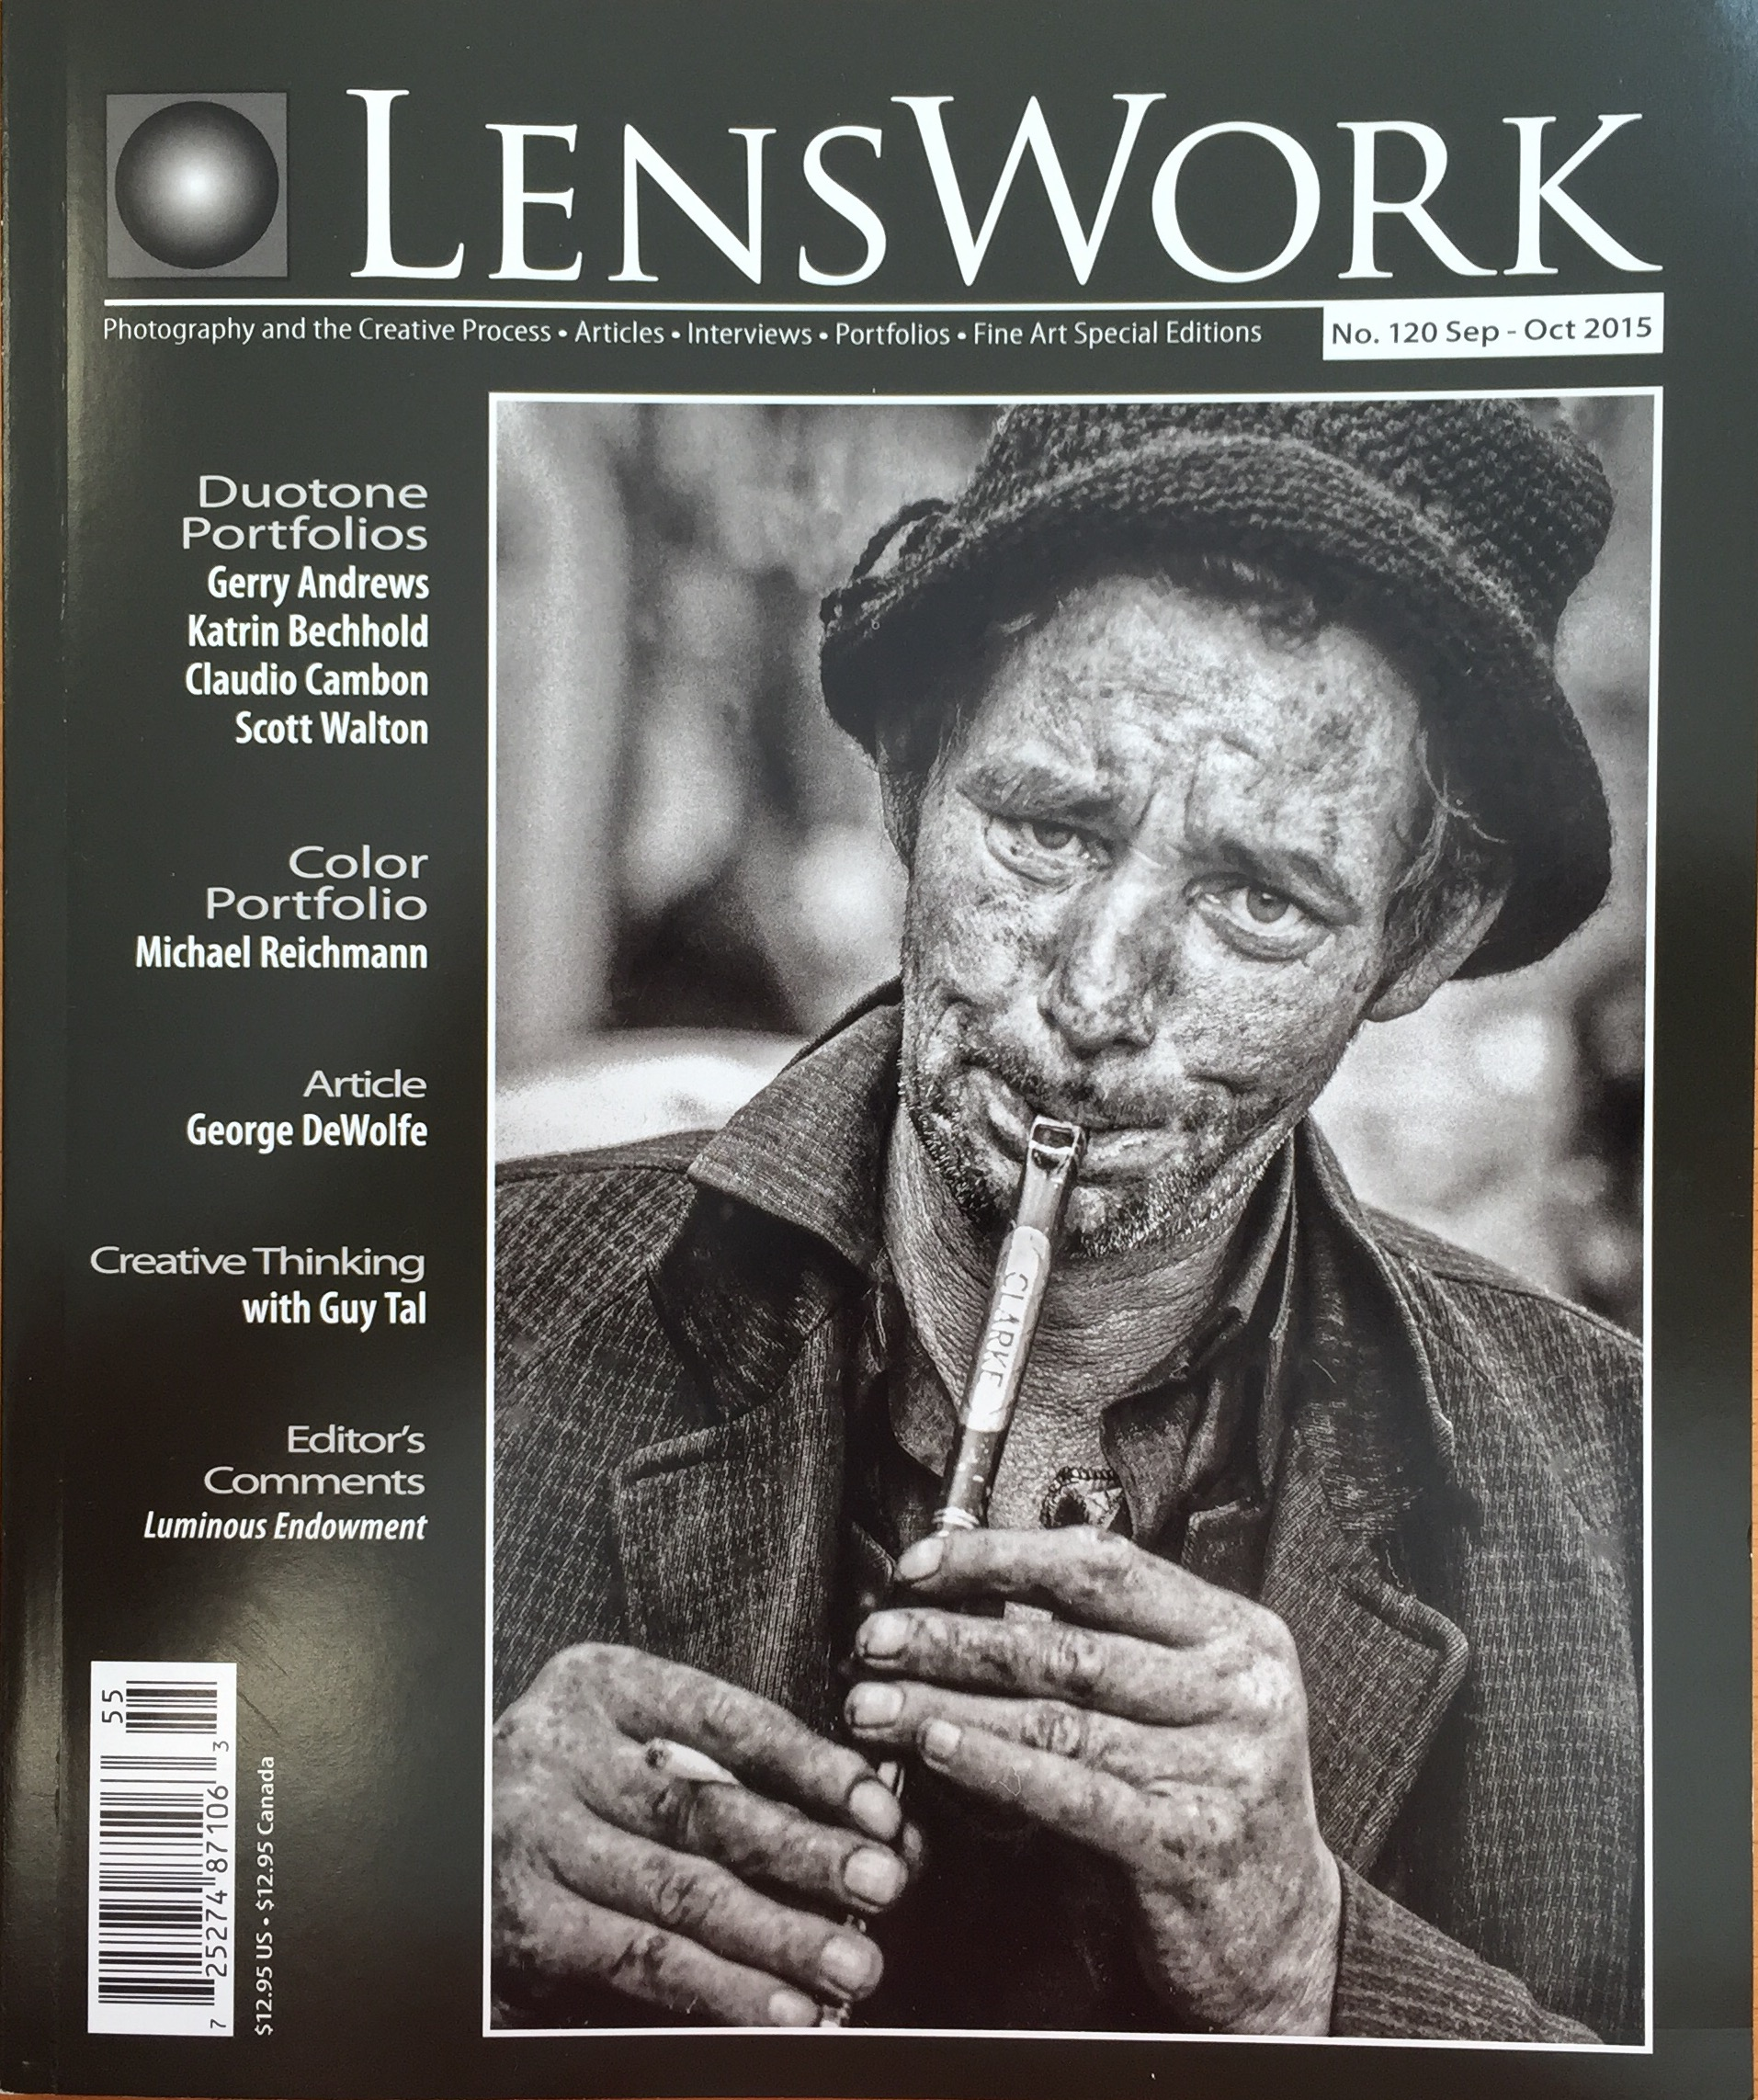 LensWork – Interviews with Photographers